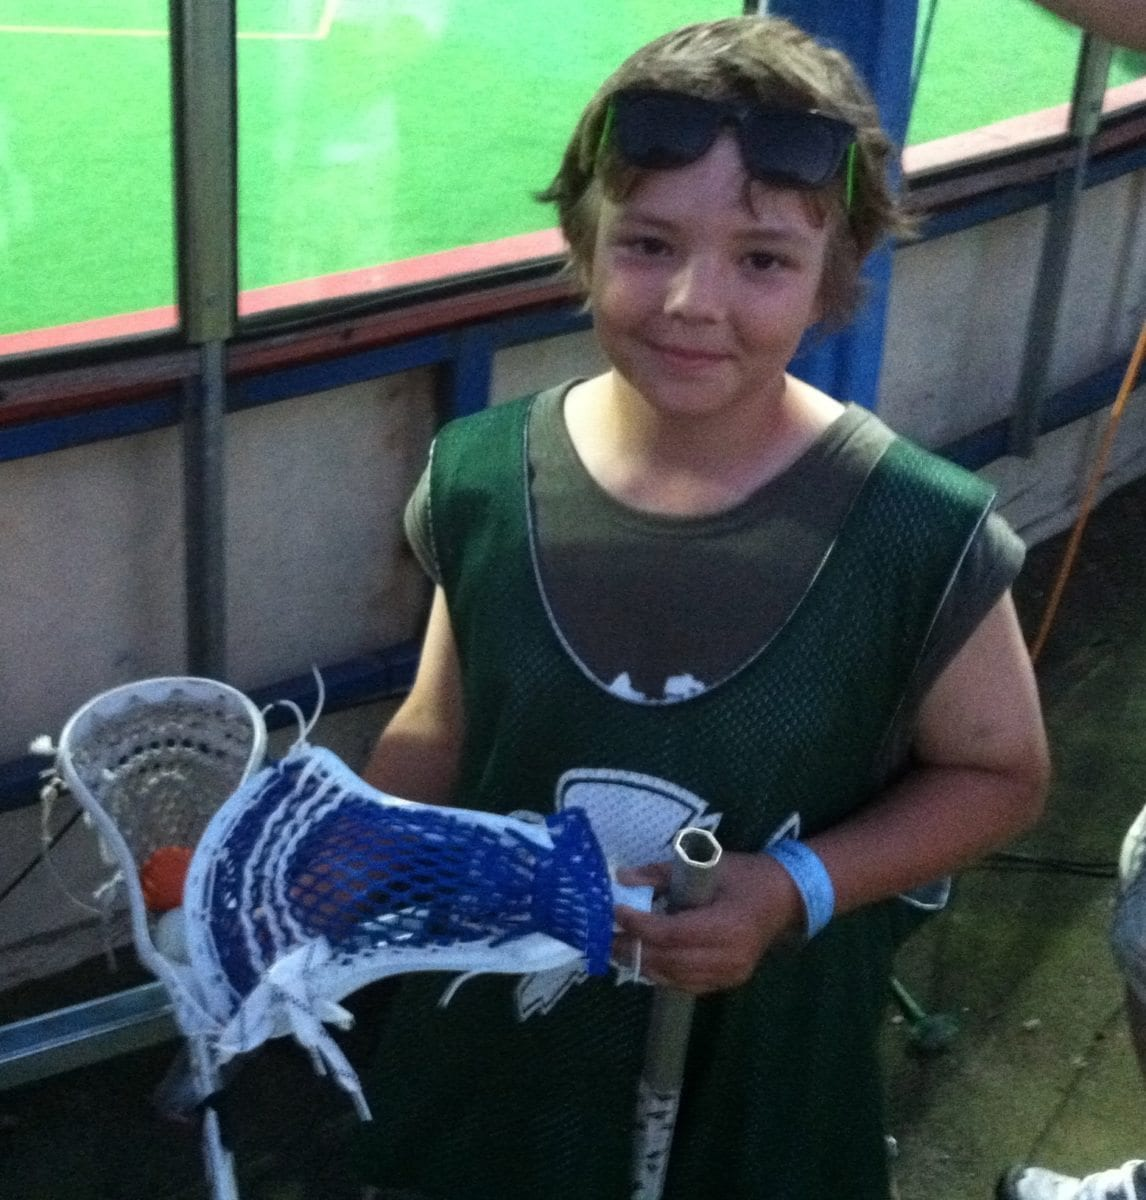 europe youth lacrosse player